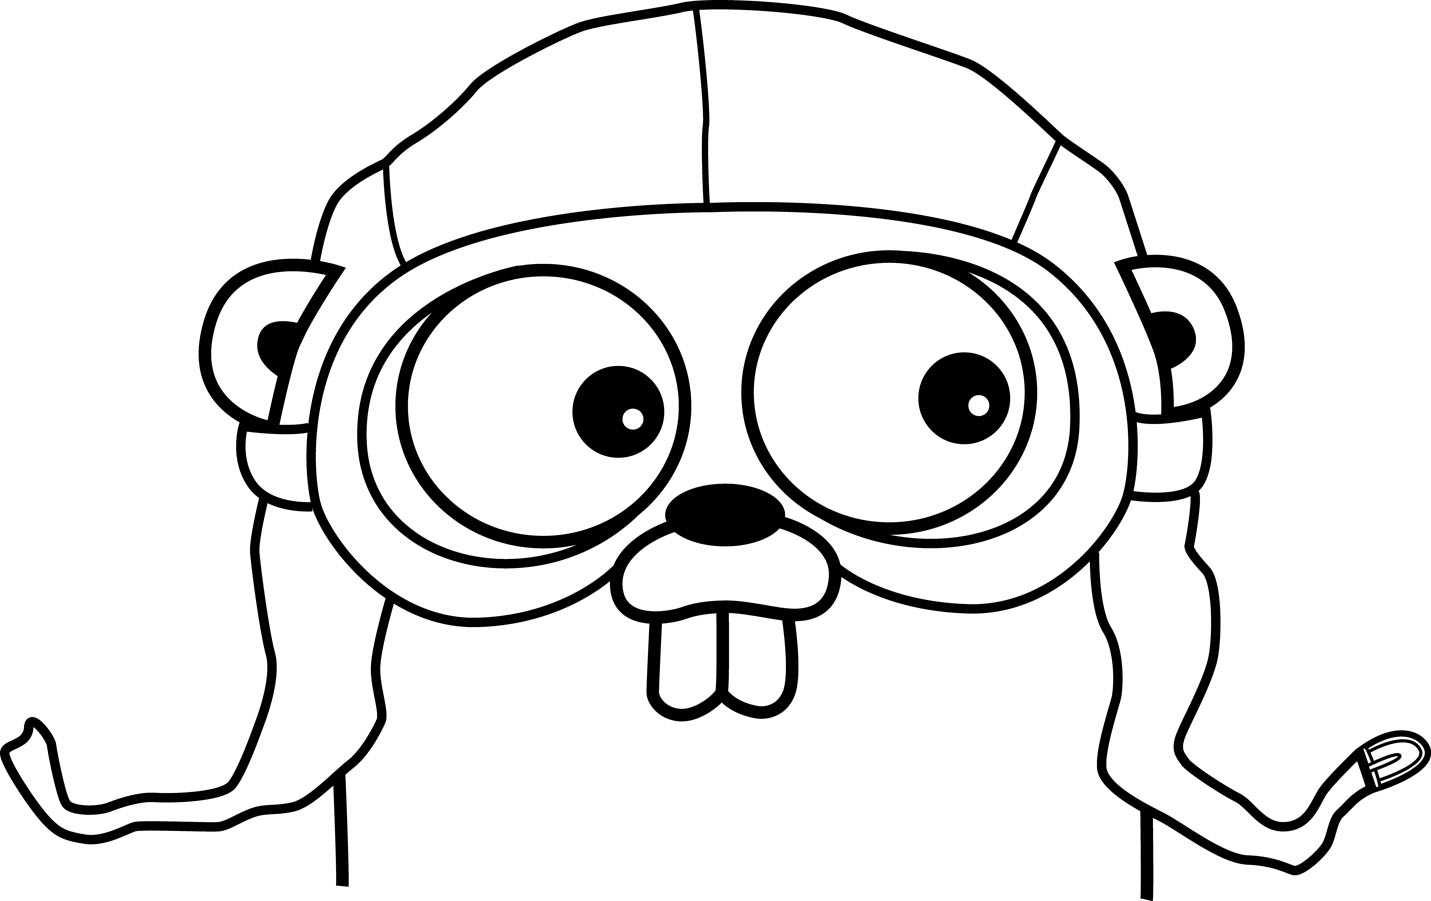 Gopher svg #17, Download drawings